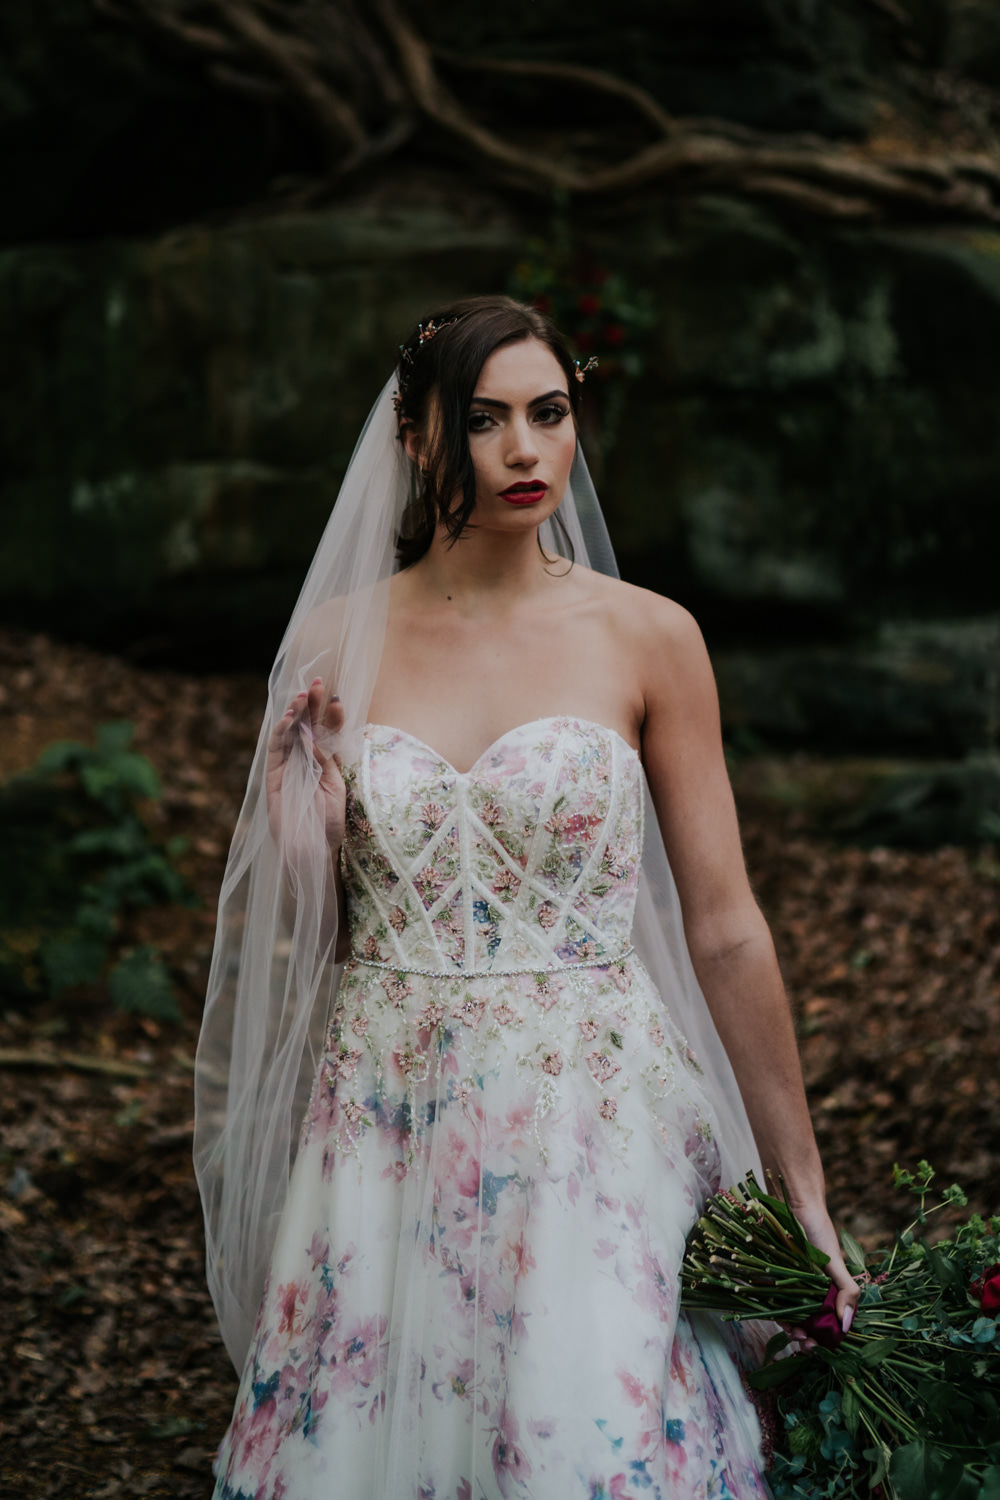 Dress Gown Bride Bridal Pink Floral Tulle Strapless Bodice Snow White Wedding Inspiration Joasis Photography